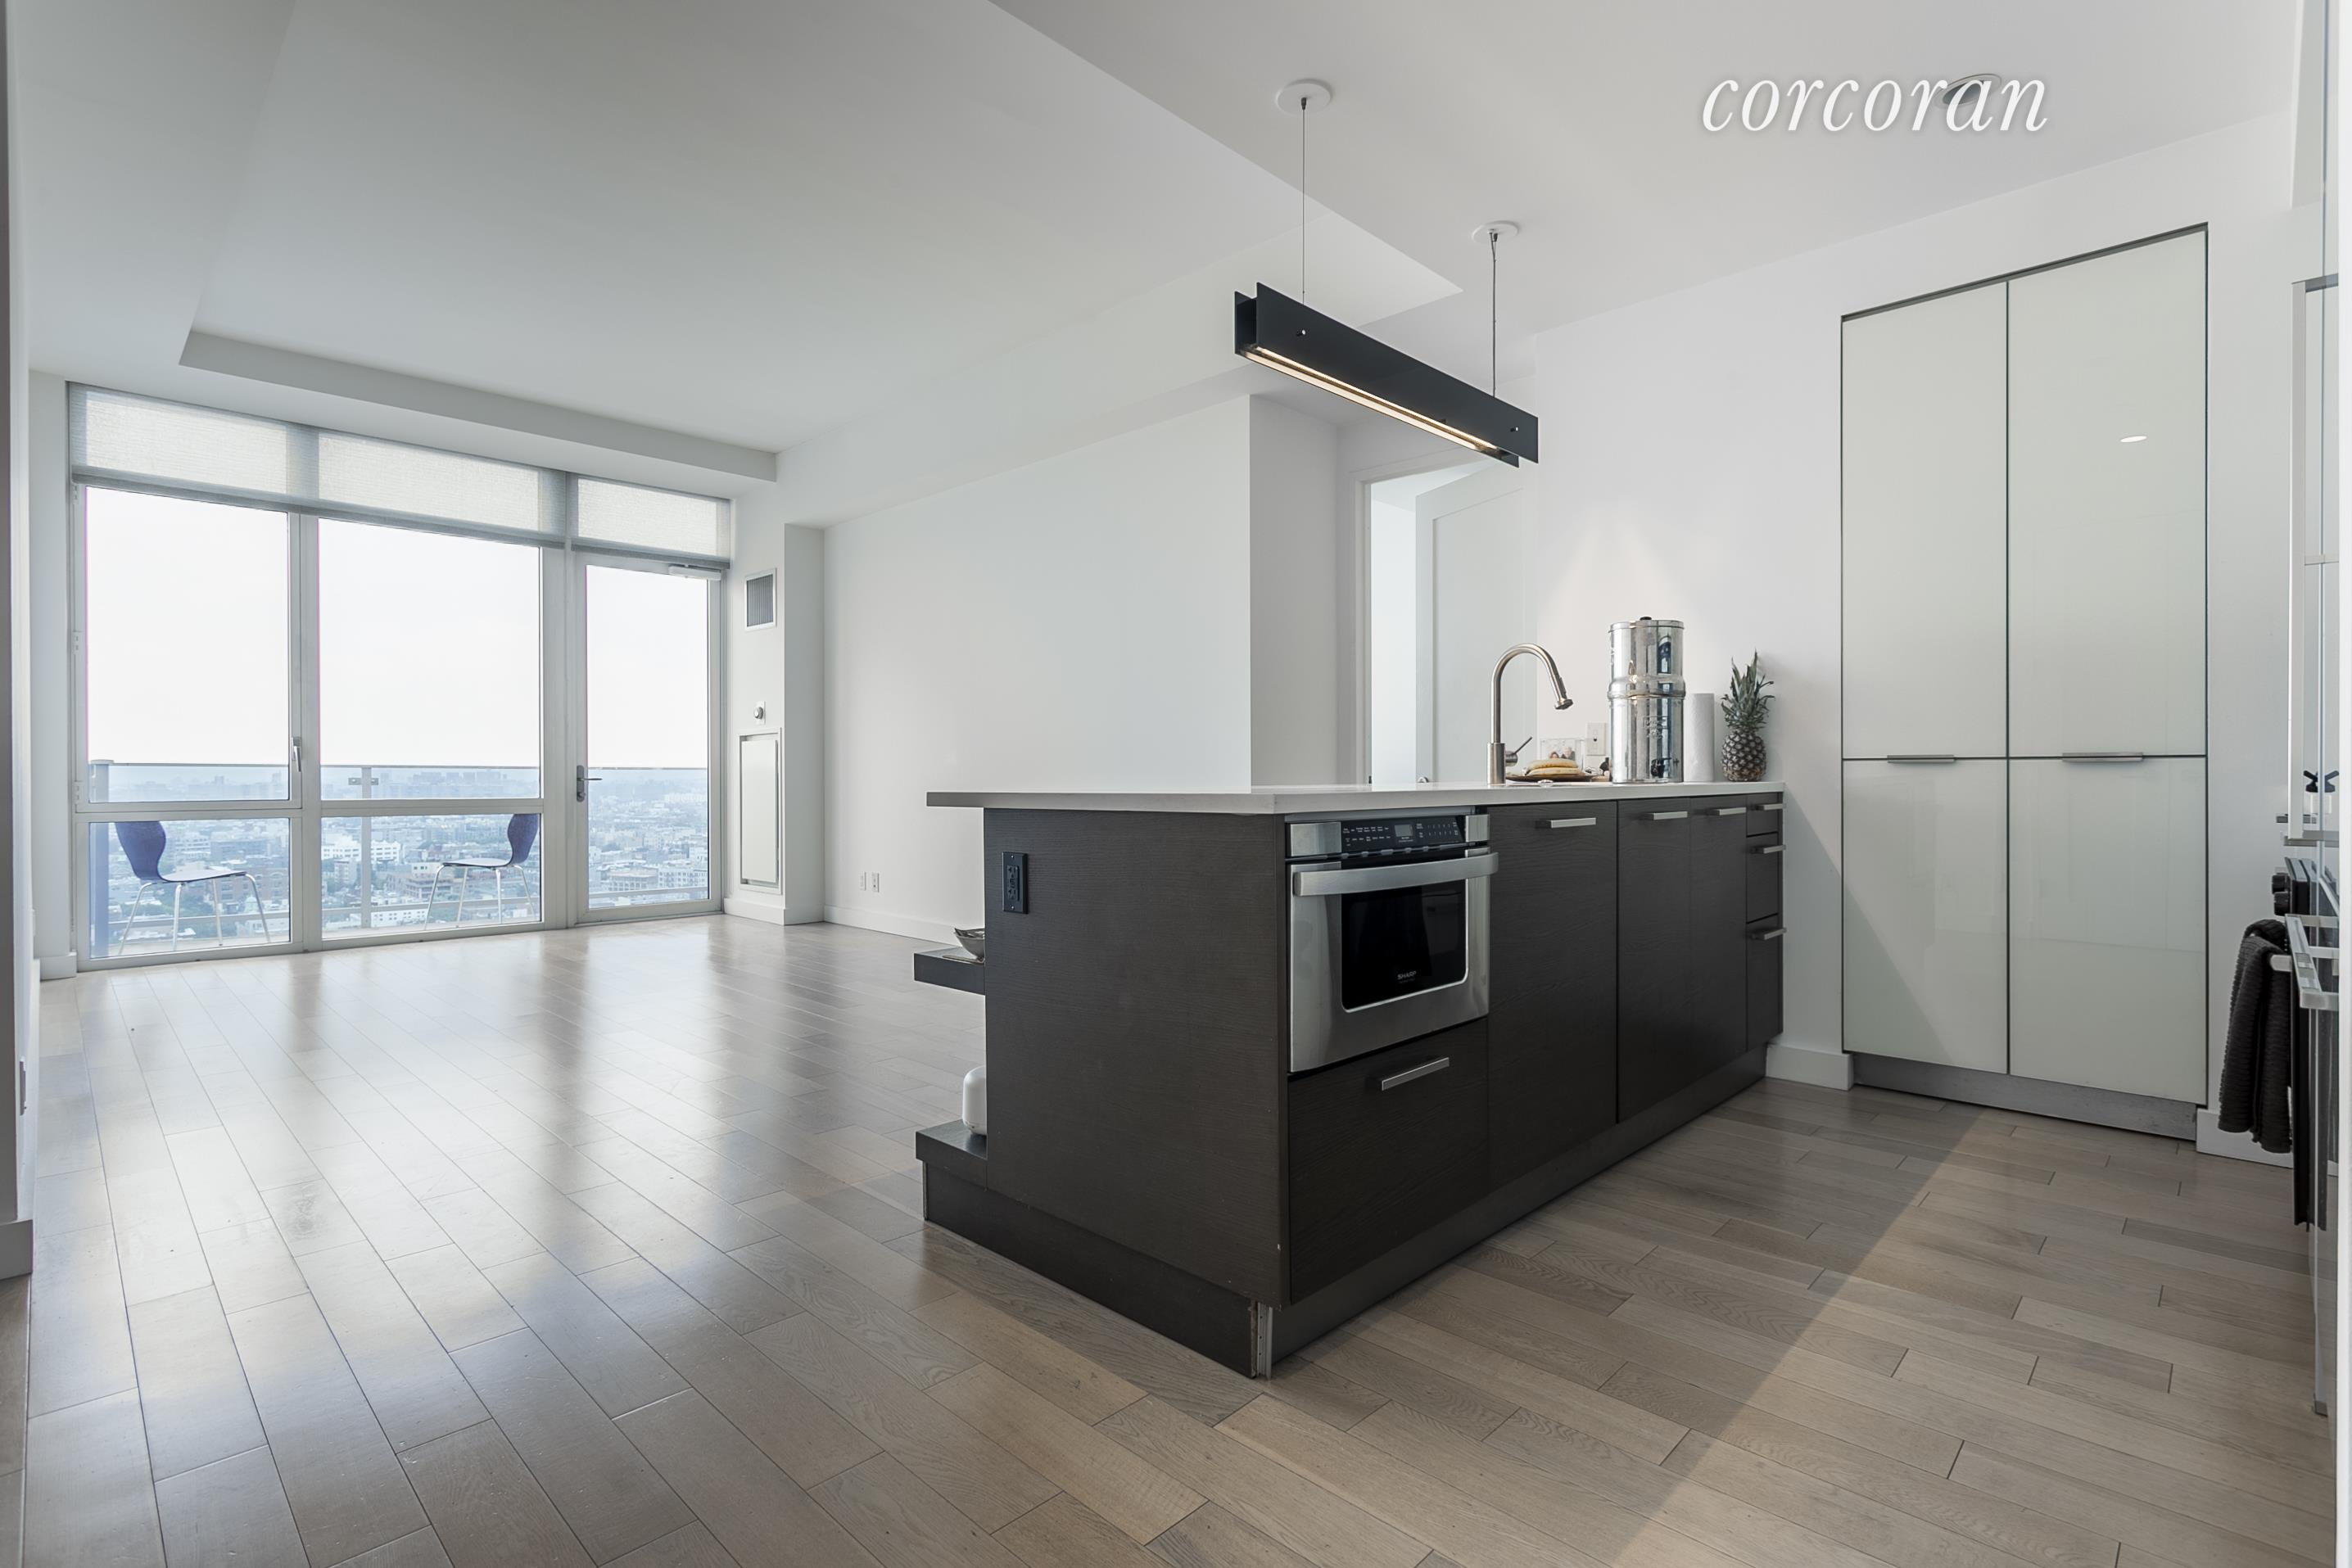 22 North 6th Street, Apt 28-J, Brooklyn, New York 11249